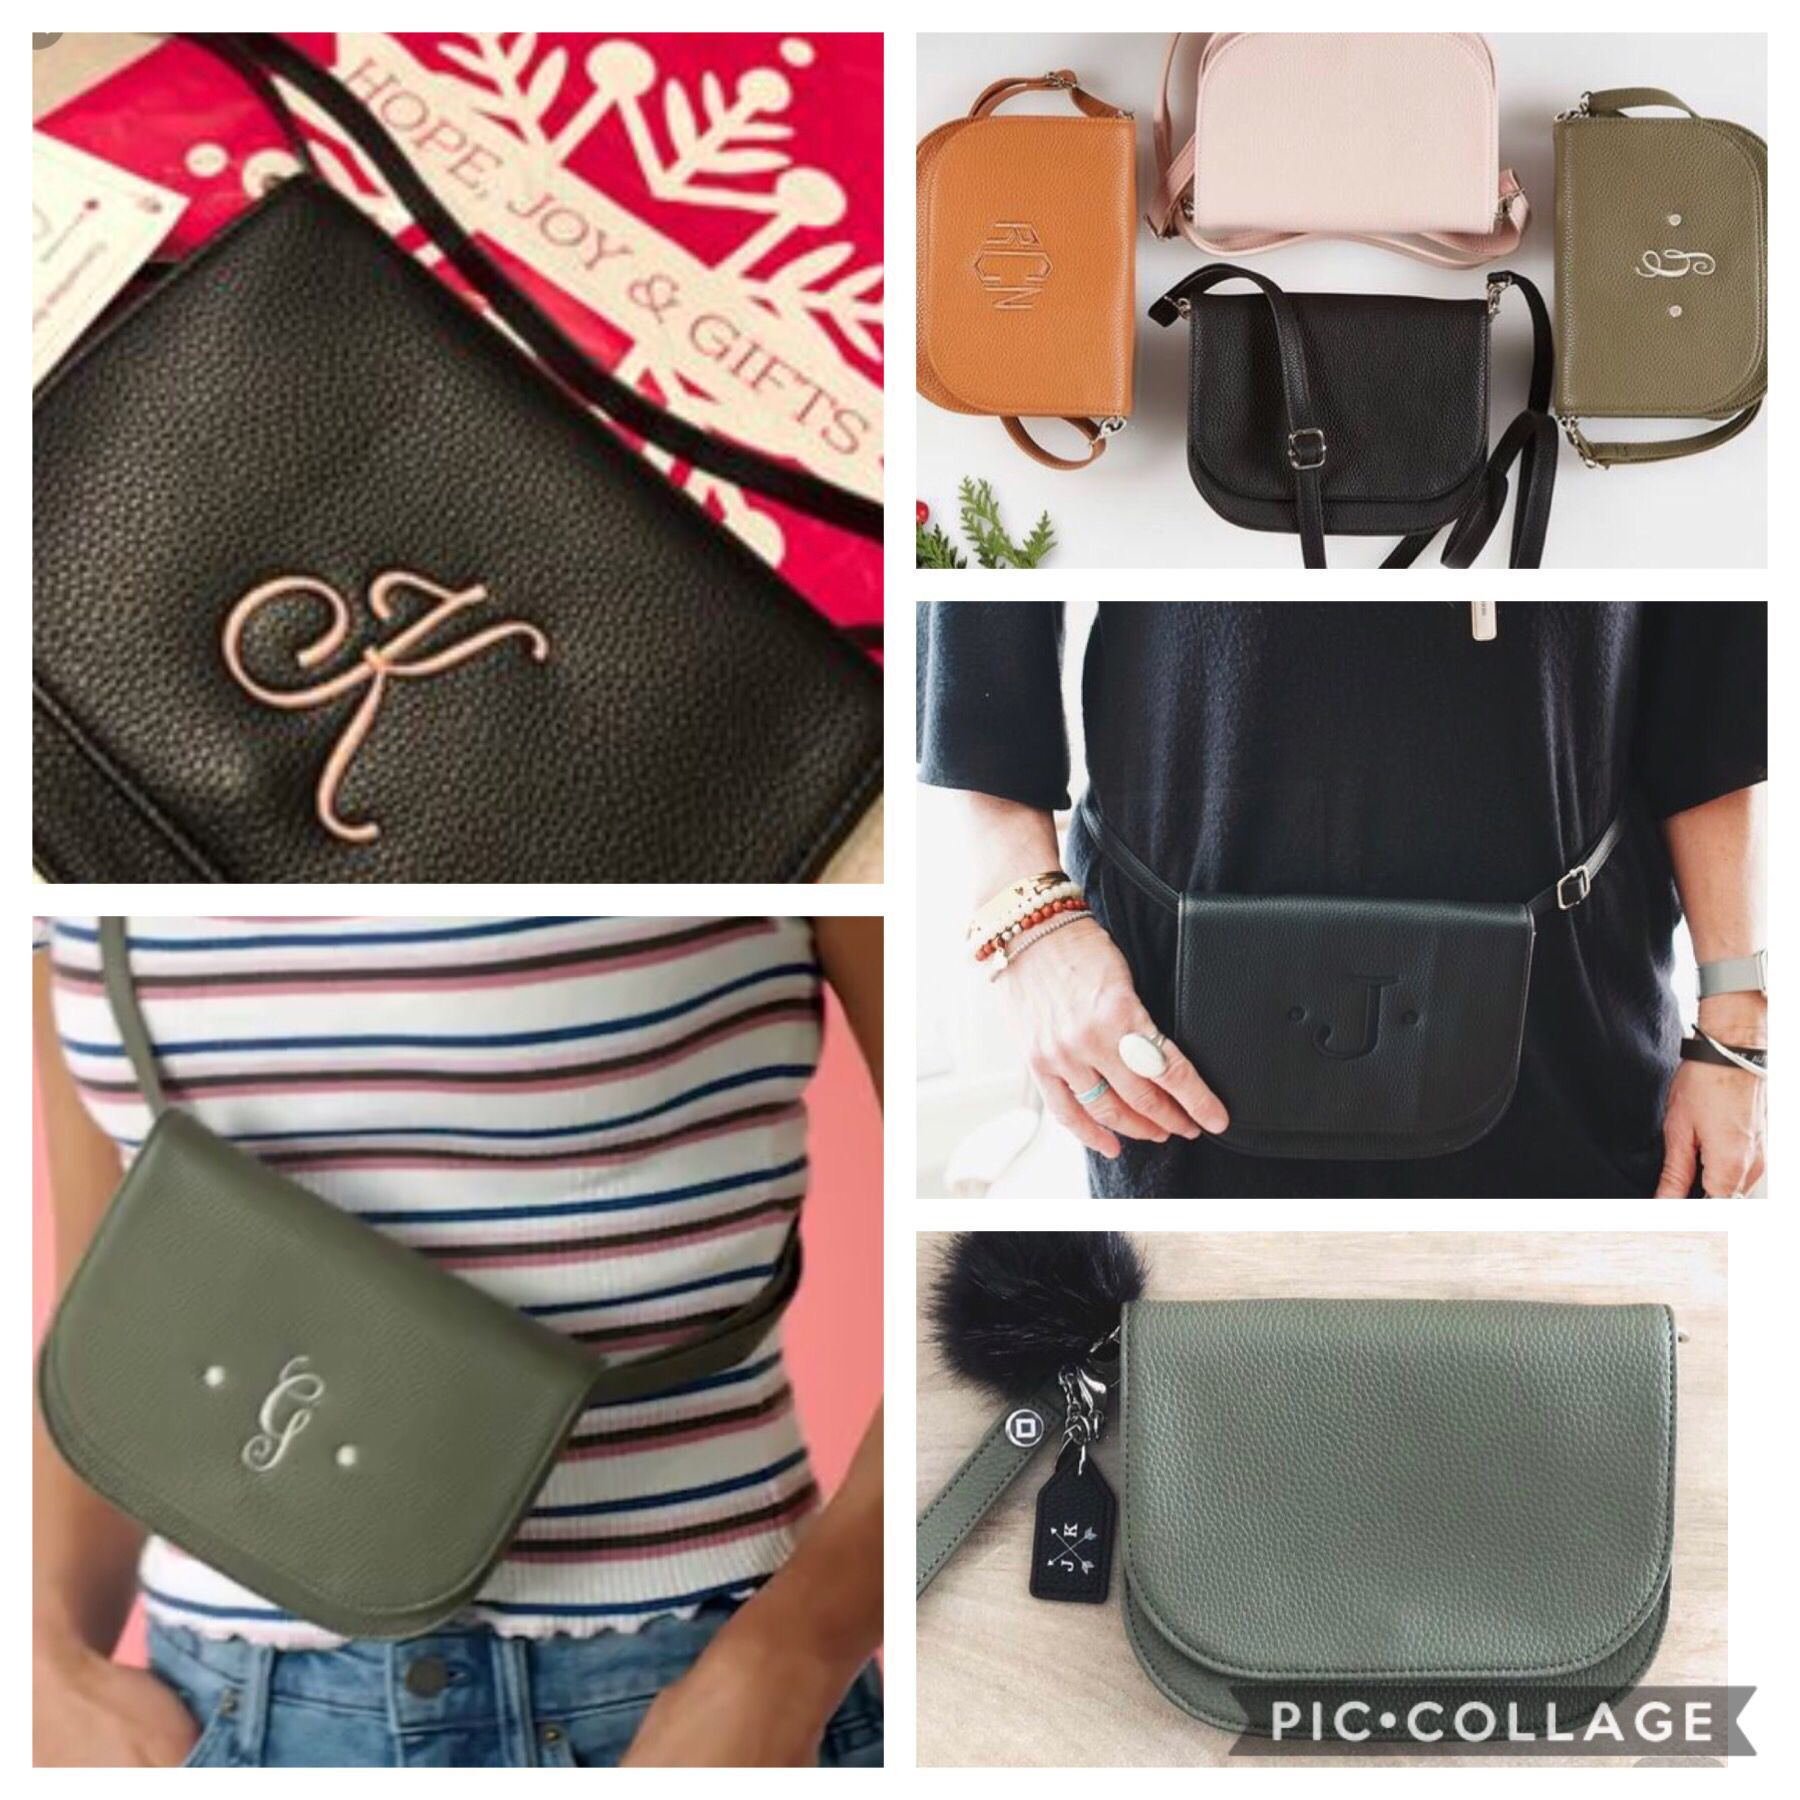 dd67d33cad2b Crossbody, clutch, Fanny pack, all in one! Thirty One gifts | Thirty ...